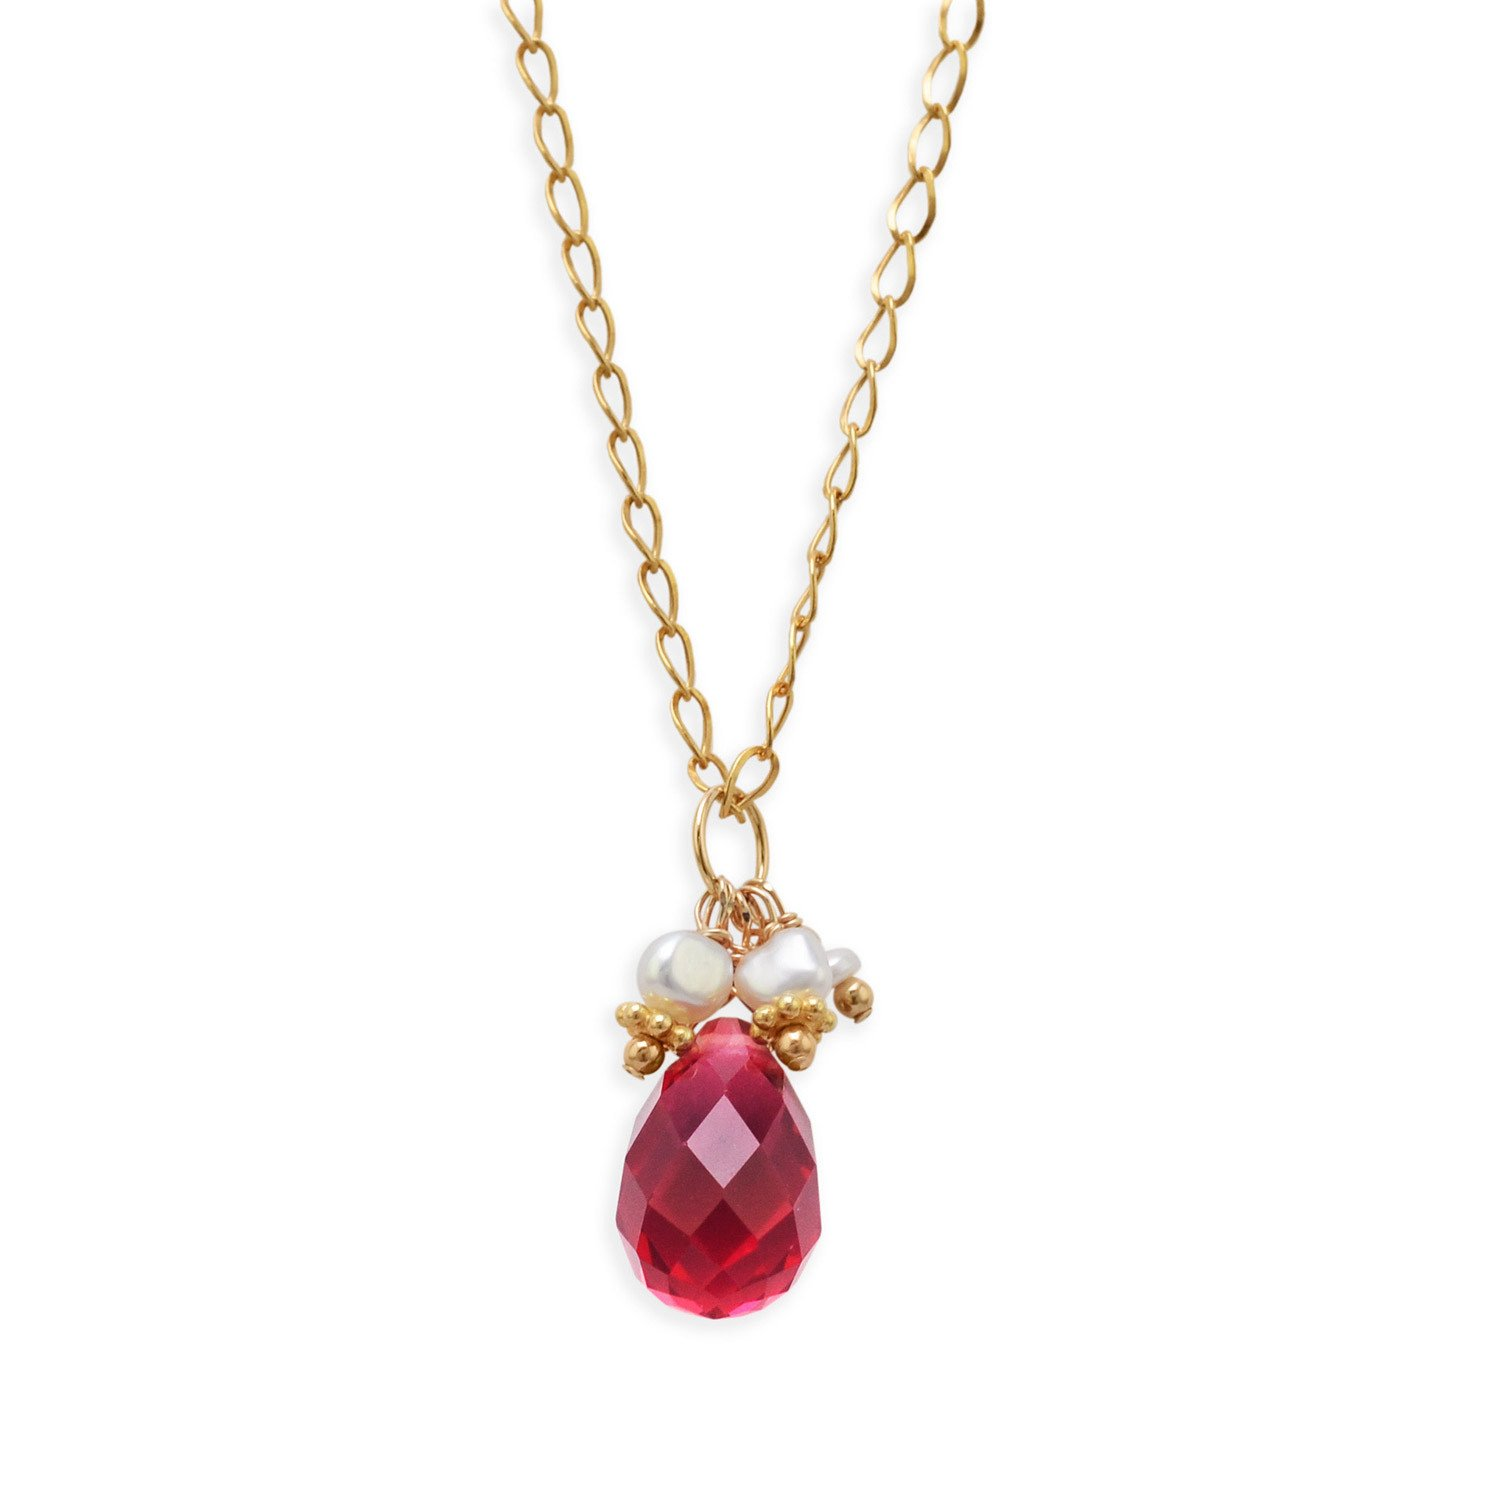 16″ 14/20 Gold Filled Necklace with Red Glass Briolette and Cultured Freshwater Pearls